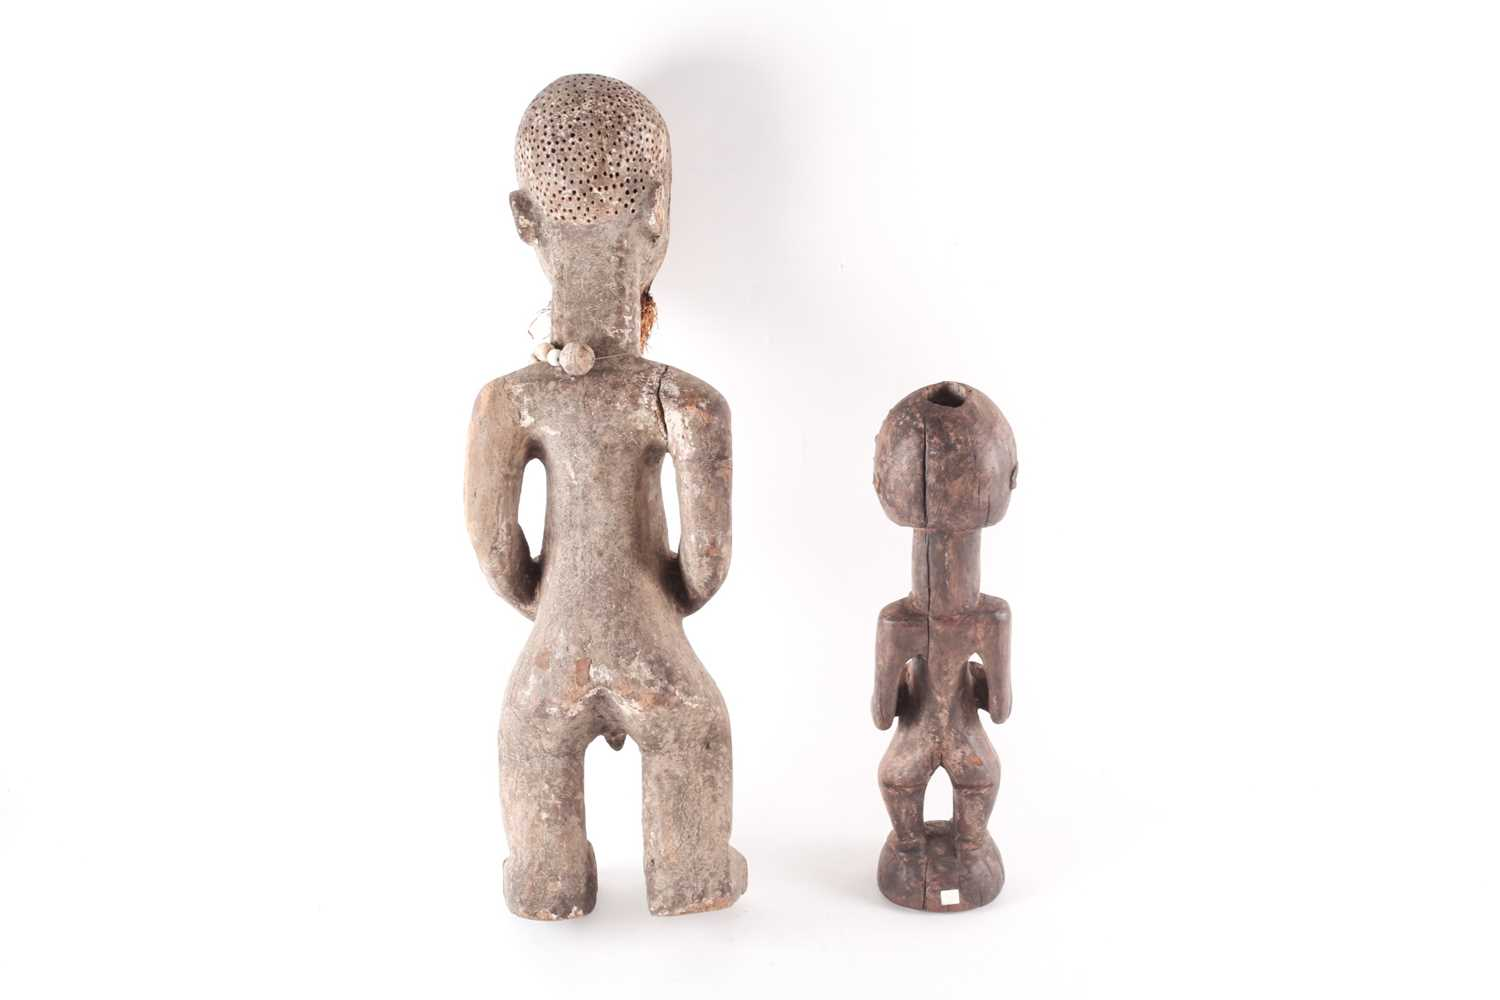 A Songye standing male reliquary power figure, Democratic Republic of Congo, the crown of the head - Image 3 of 3